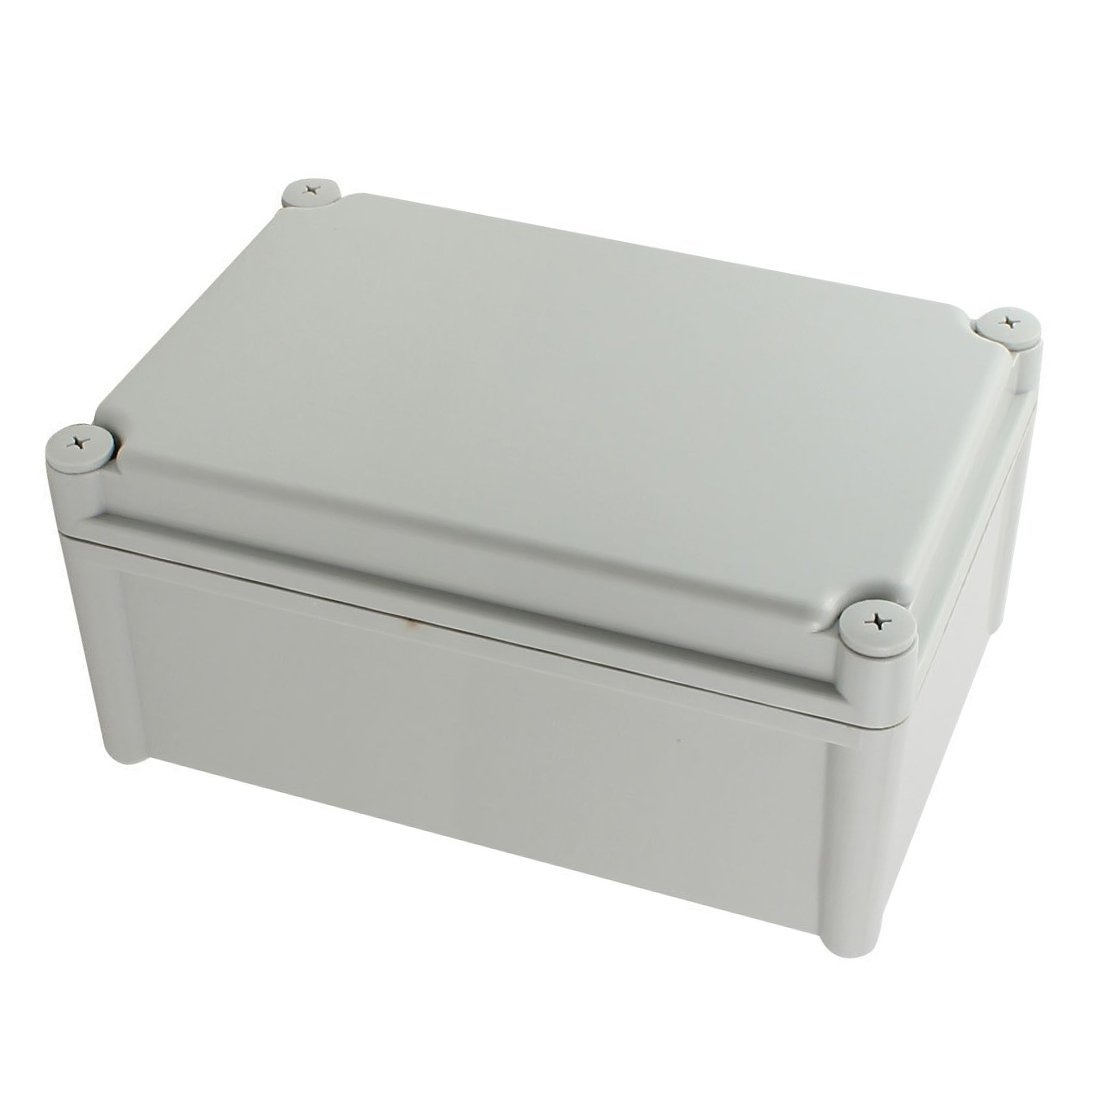 New Diy Abs Project Box Ip65 Small Electronics Enclosure Plastic Enclosure Waterproof Junction Box Switch Box Six Size Lighting Accessories